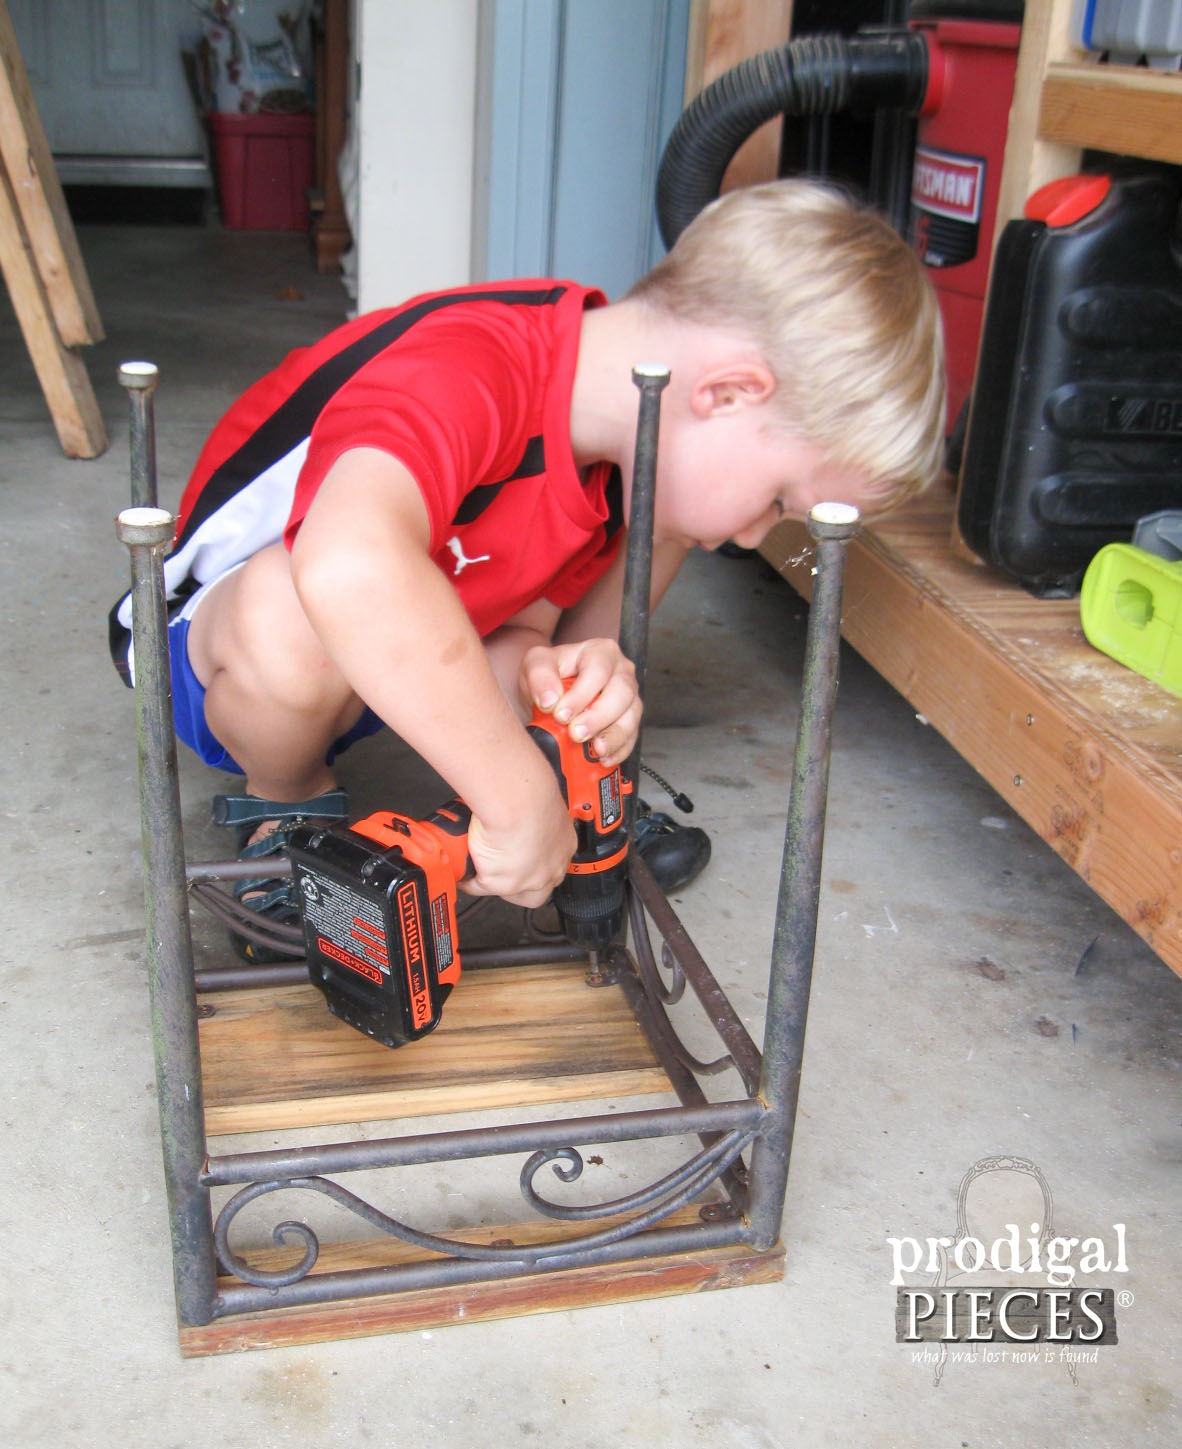 Little Boy Working on Outdoor Decor Table | Prodigal Pieces | www.prodigalpieces.com